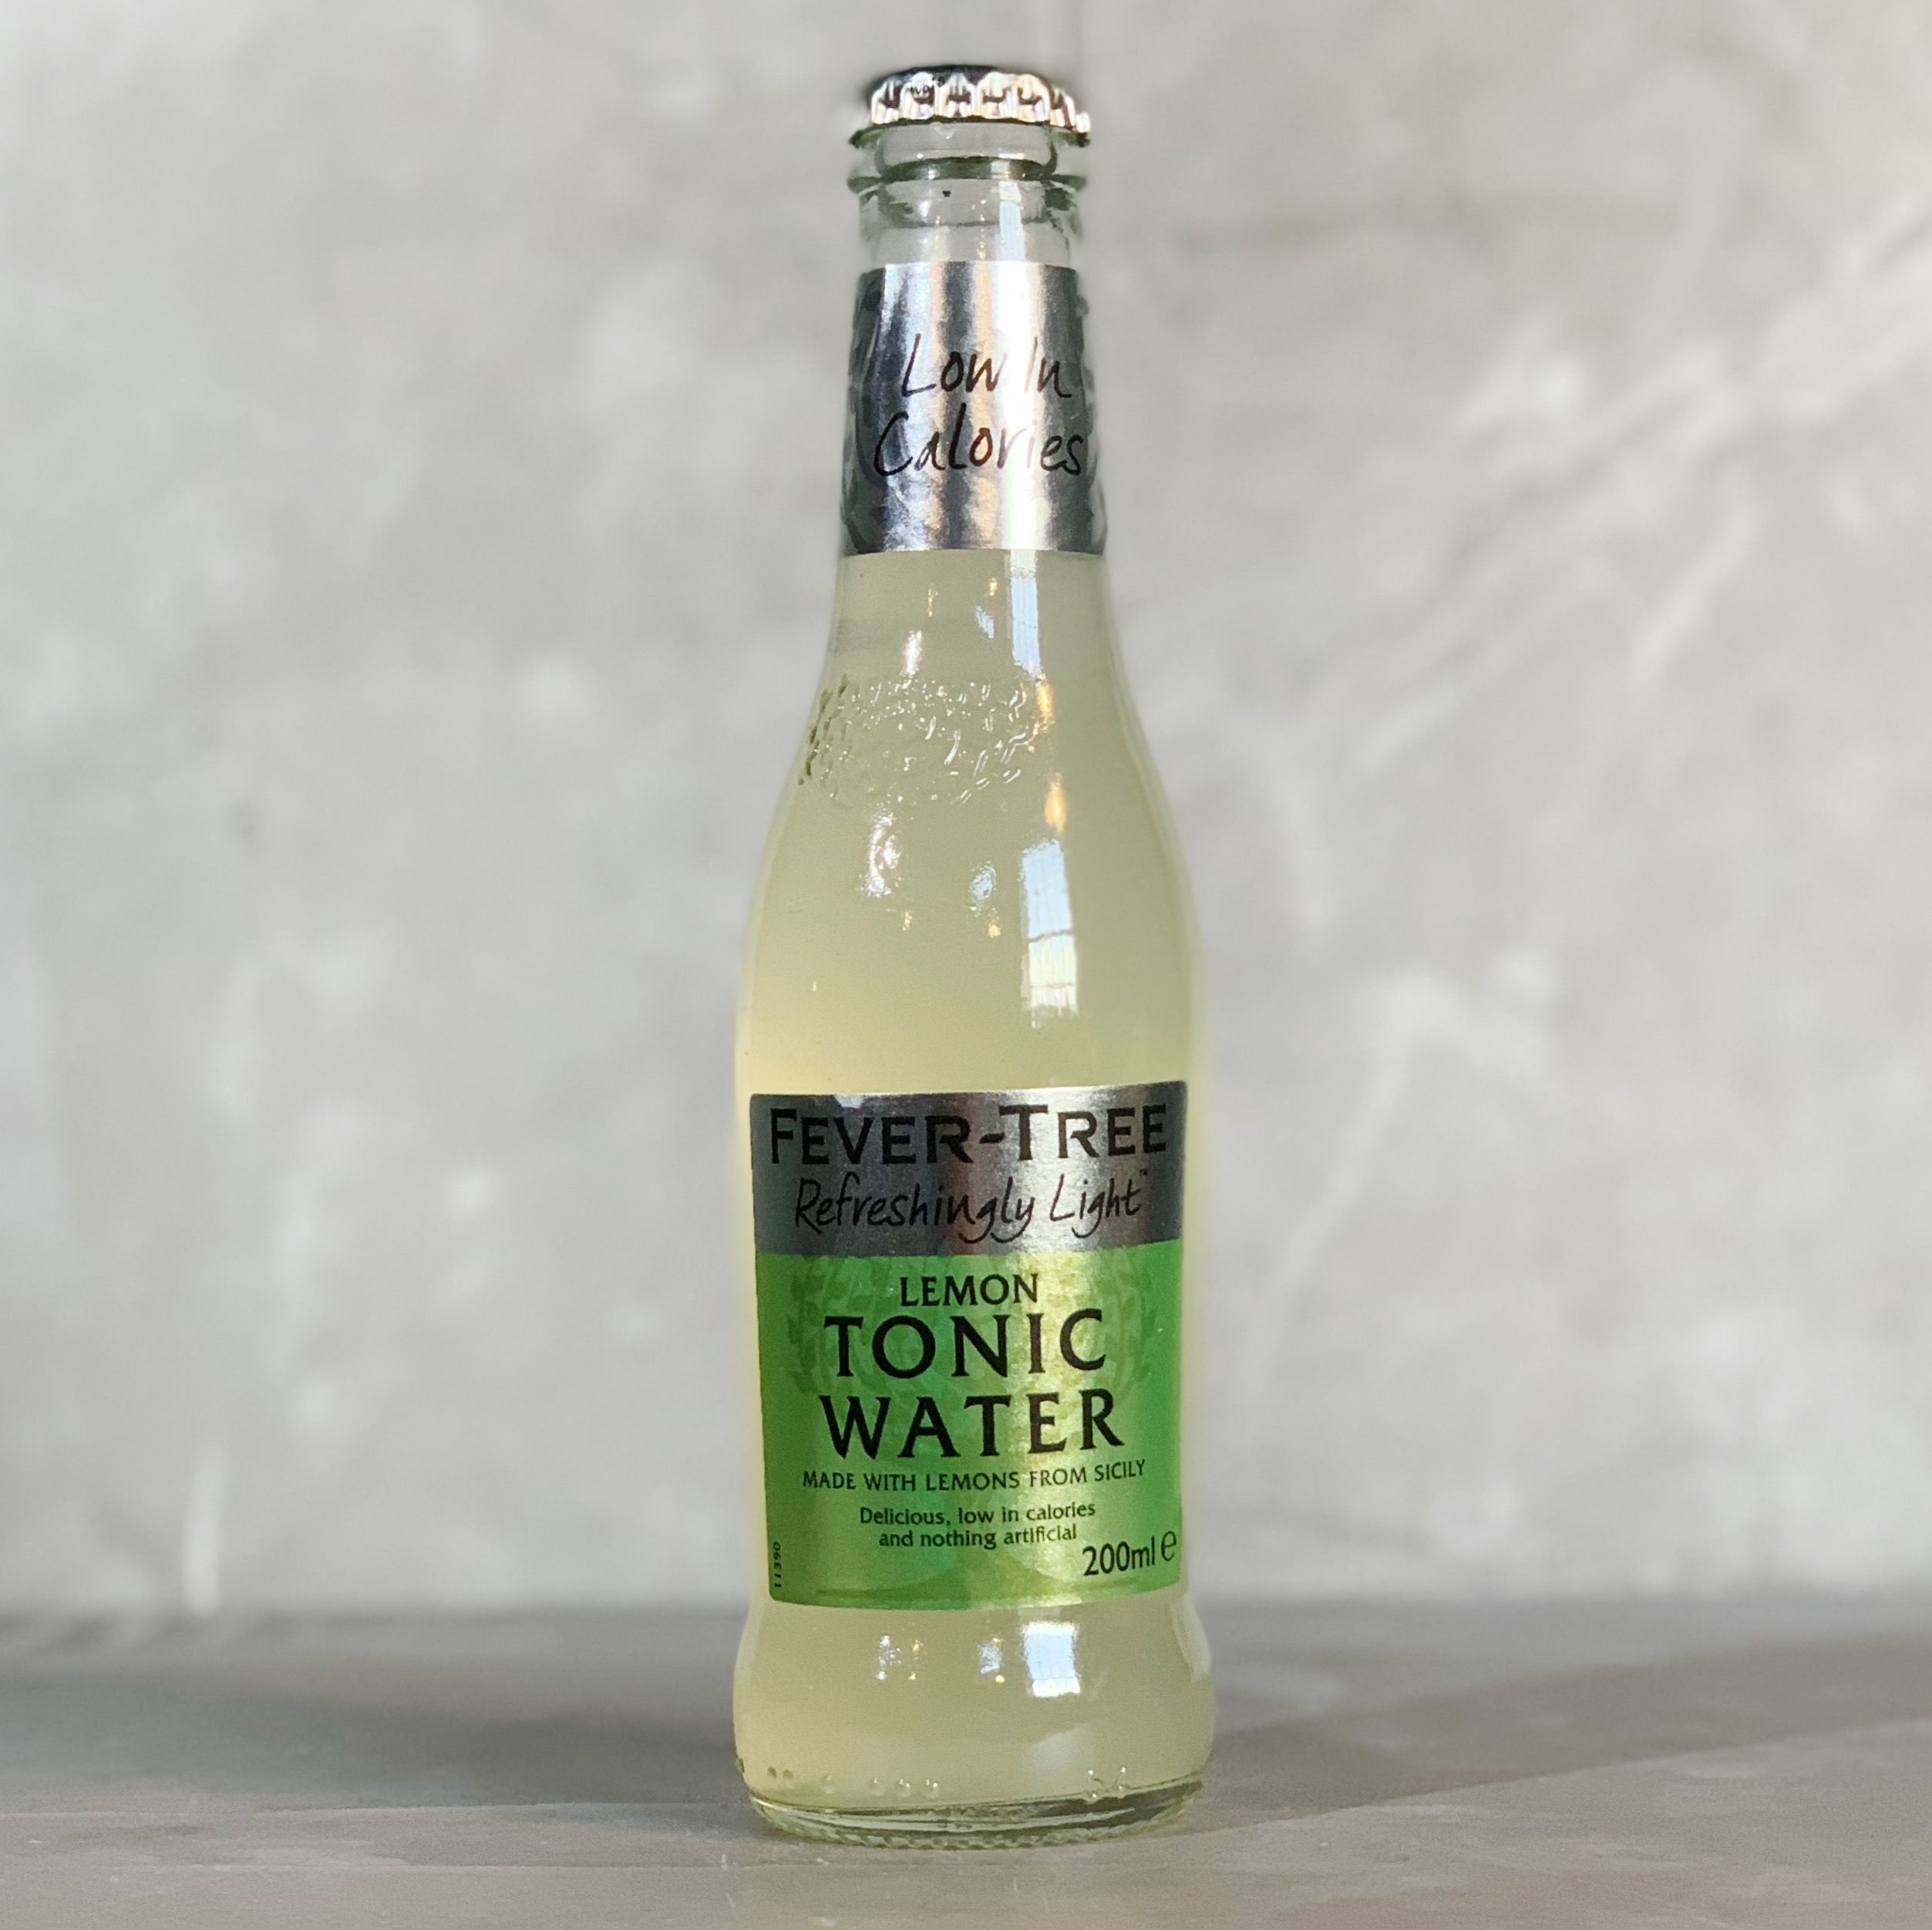 Fever Tree Lemon Tonic Water